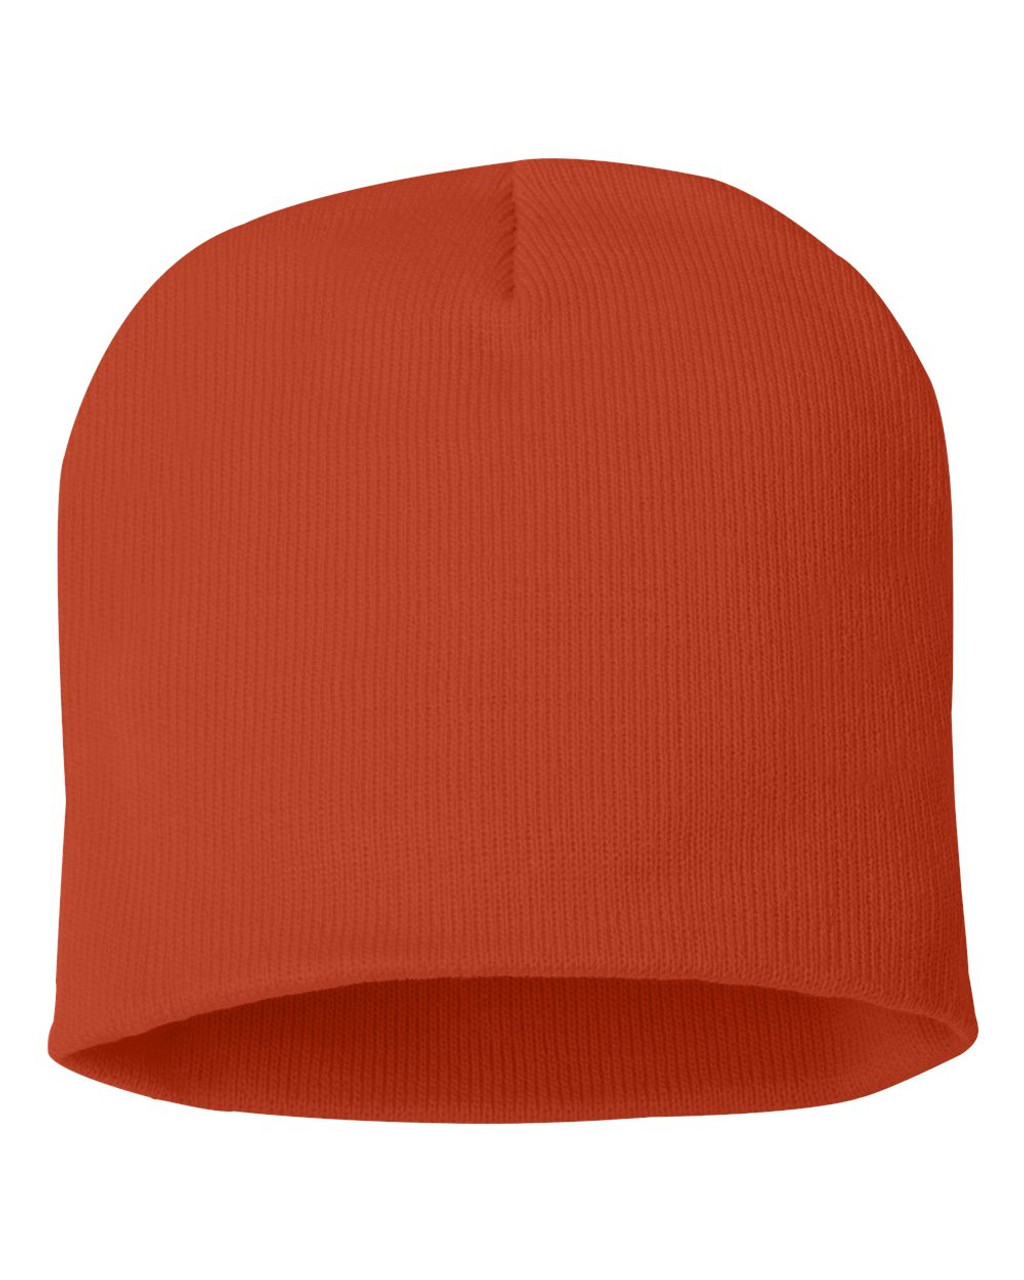 "Orange - SP08 Sportsman Acrylic Knit 8"" Toque 